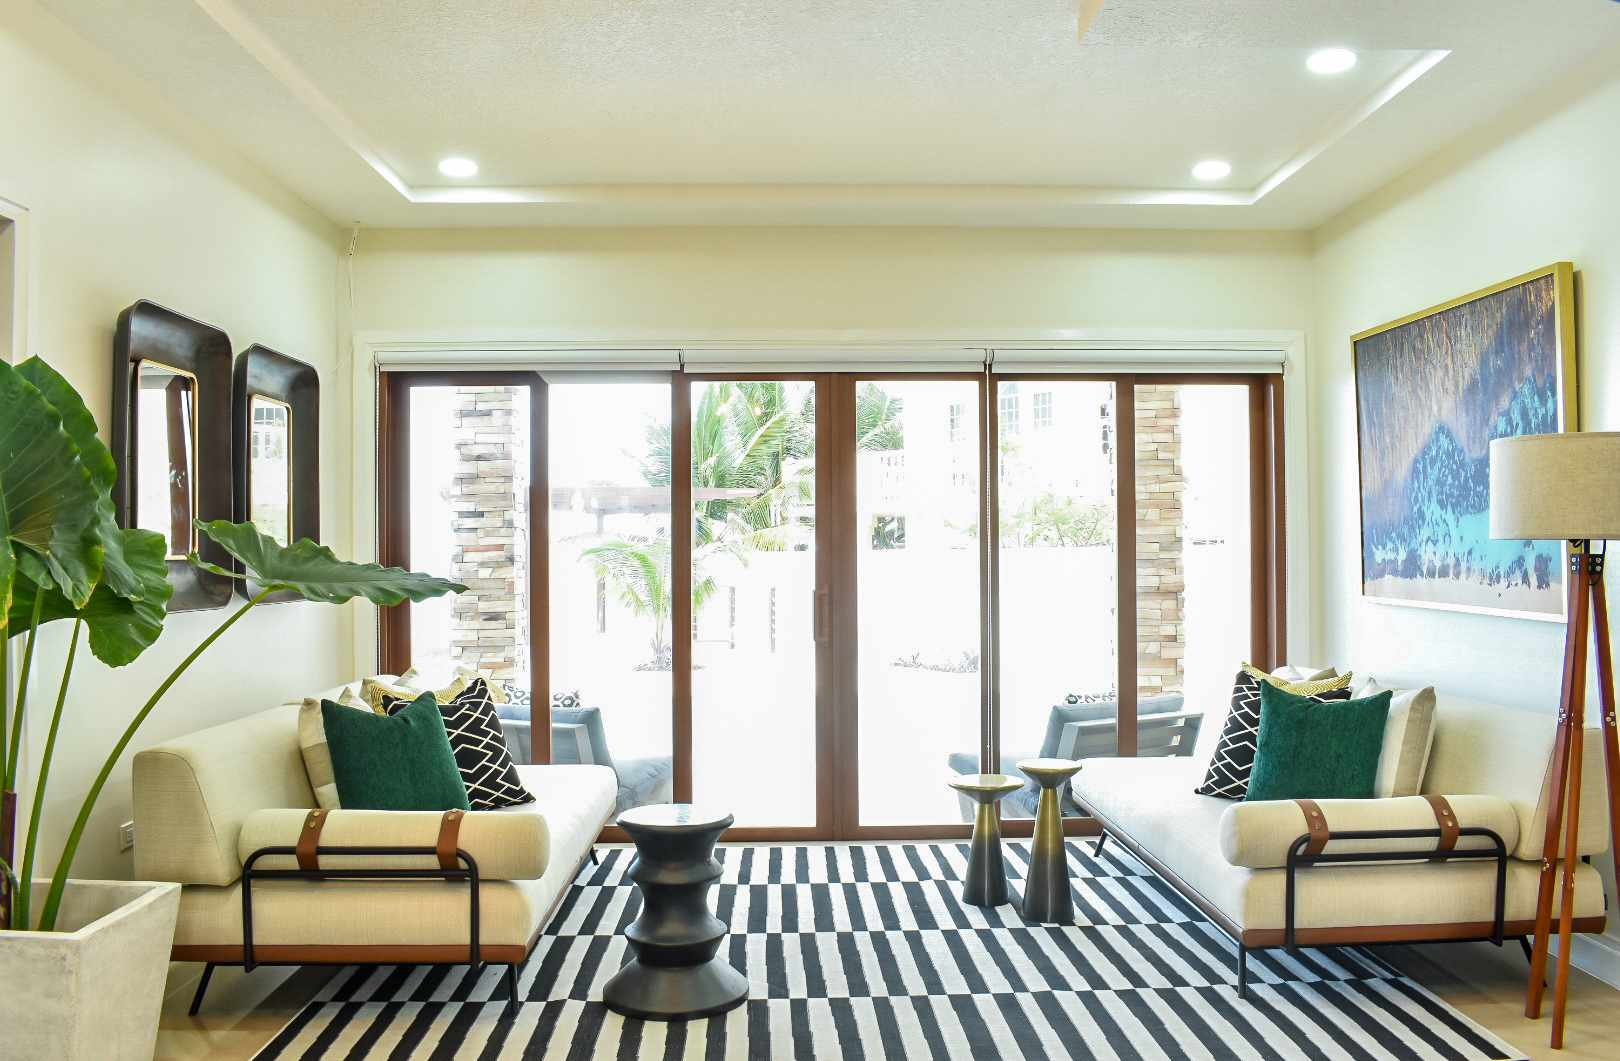 Vibrant living room with black and white rug.